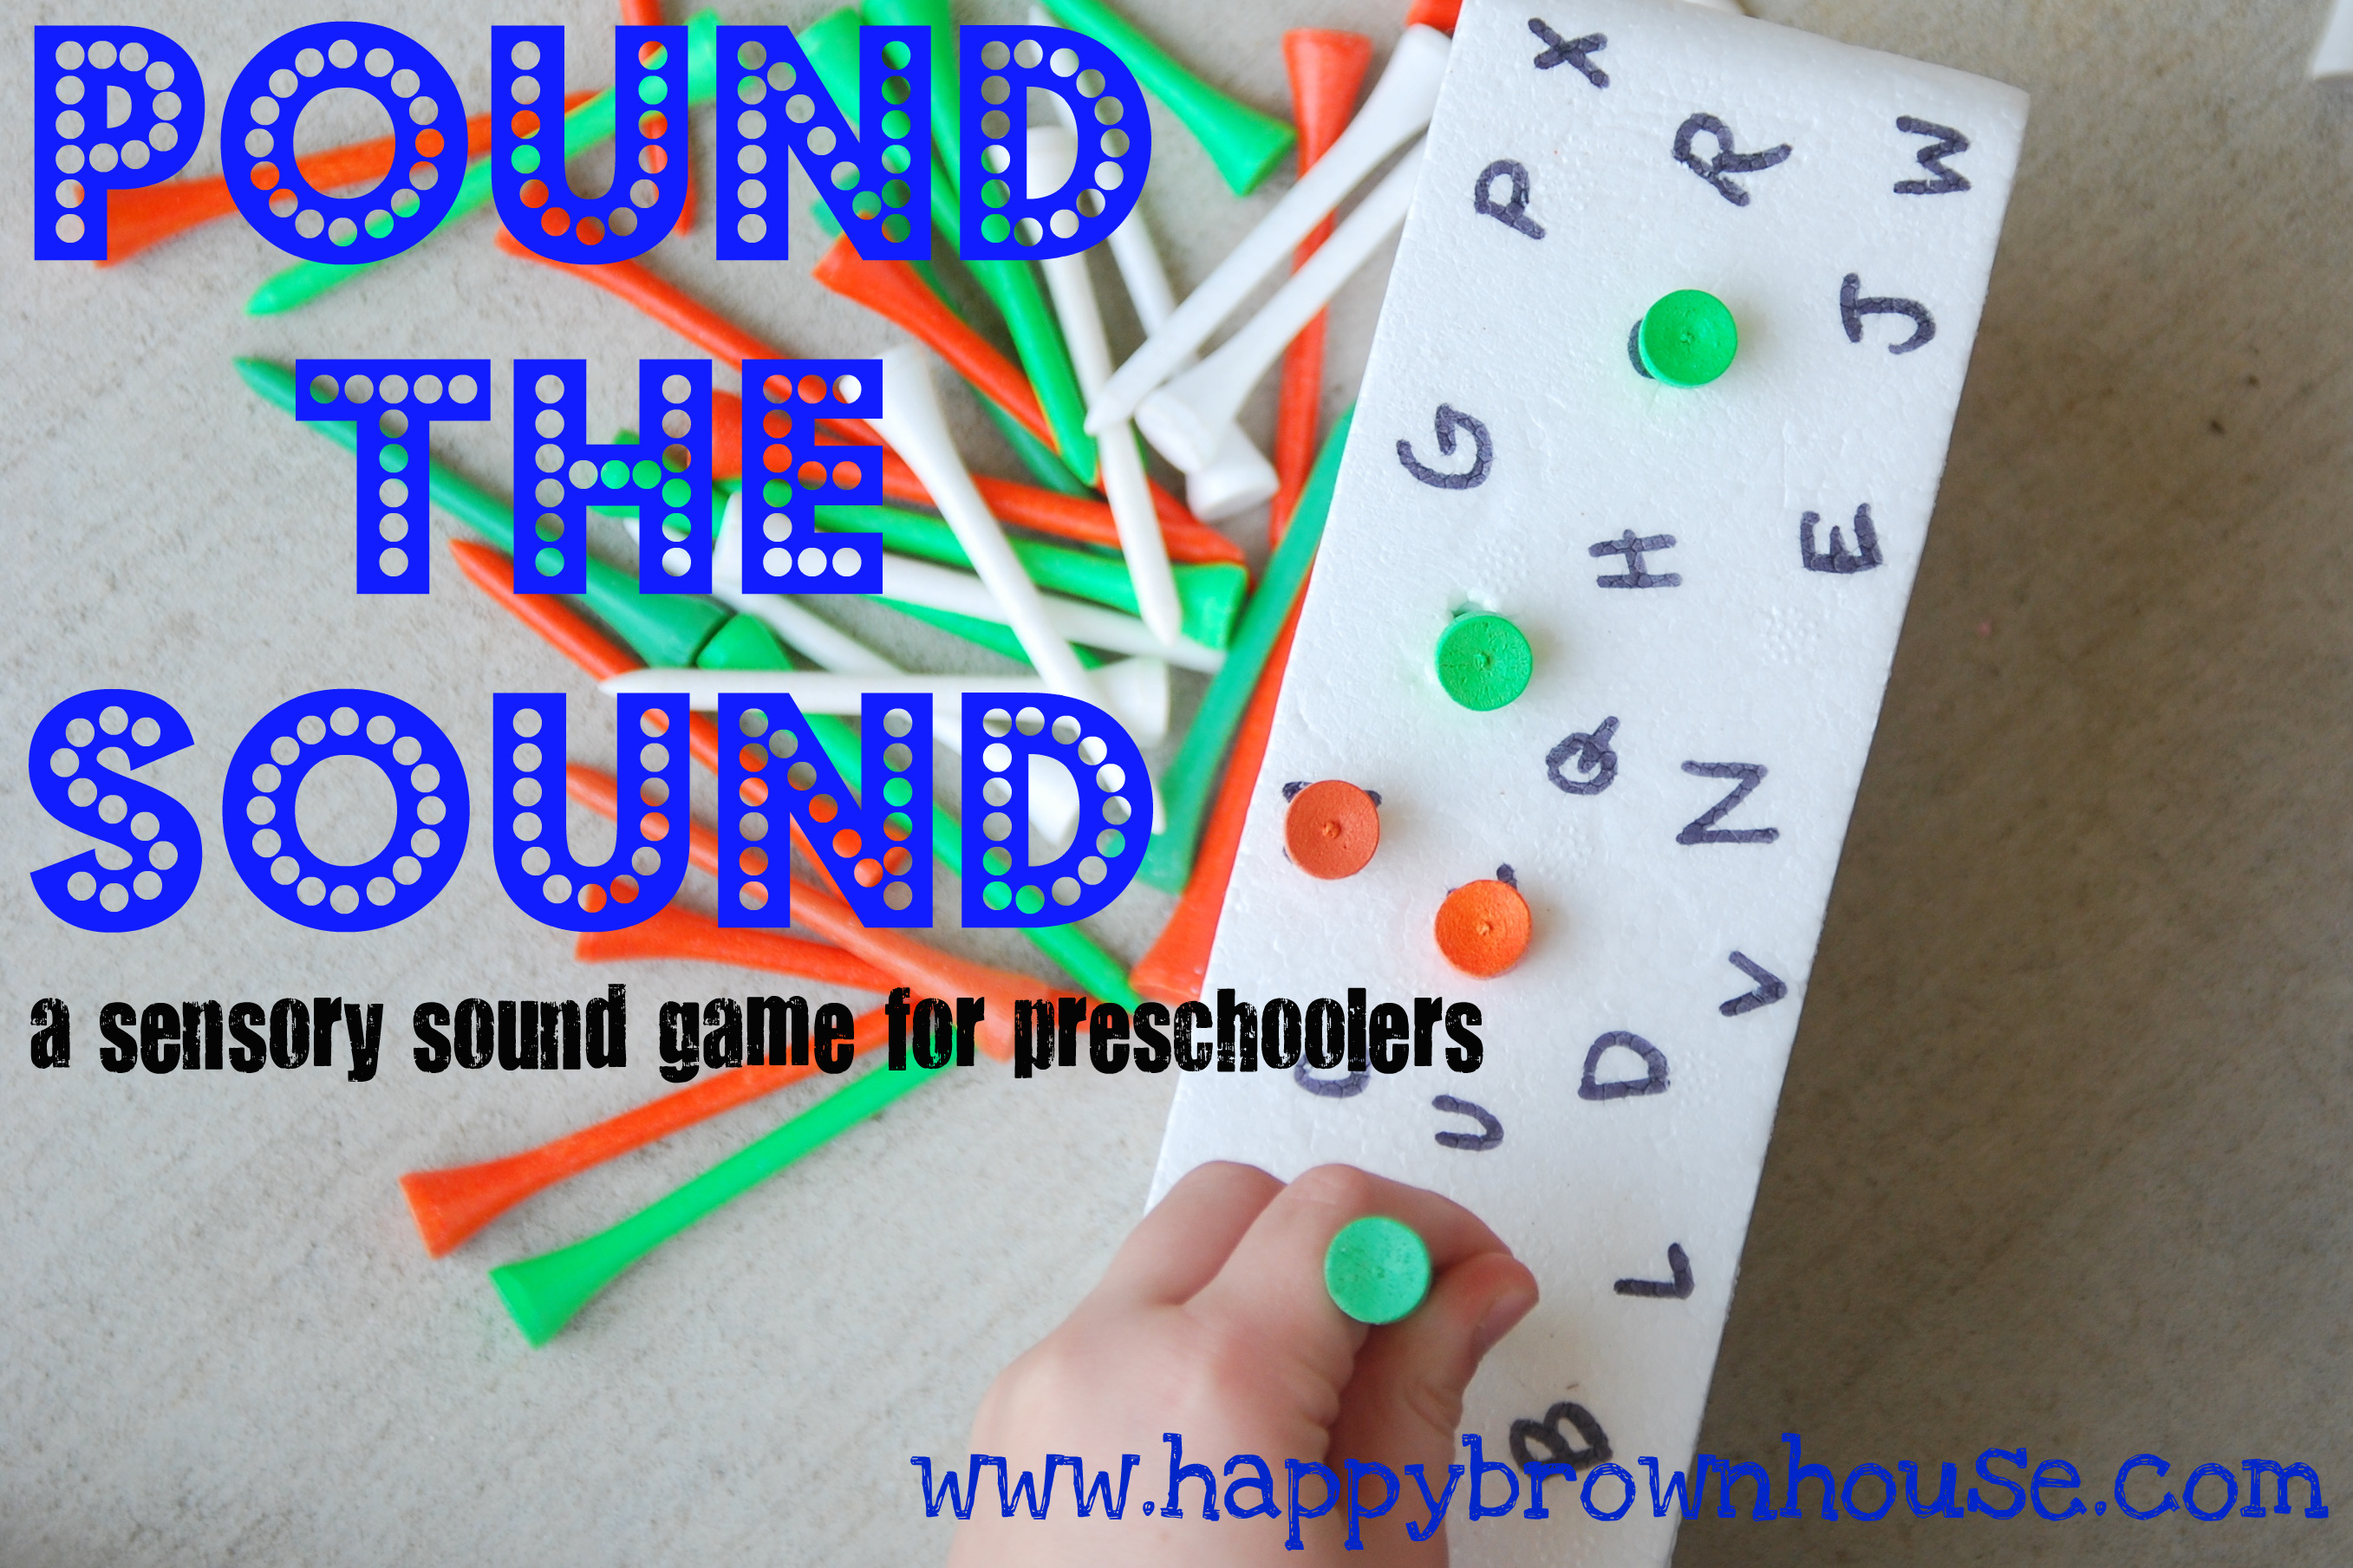 Pound The Sound A Sensory Sound Game For Preschoolers